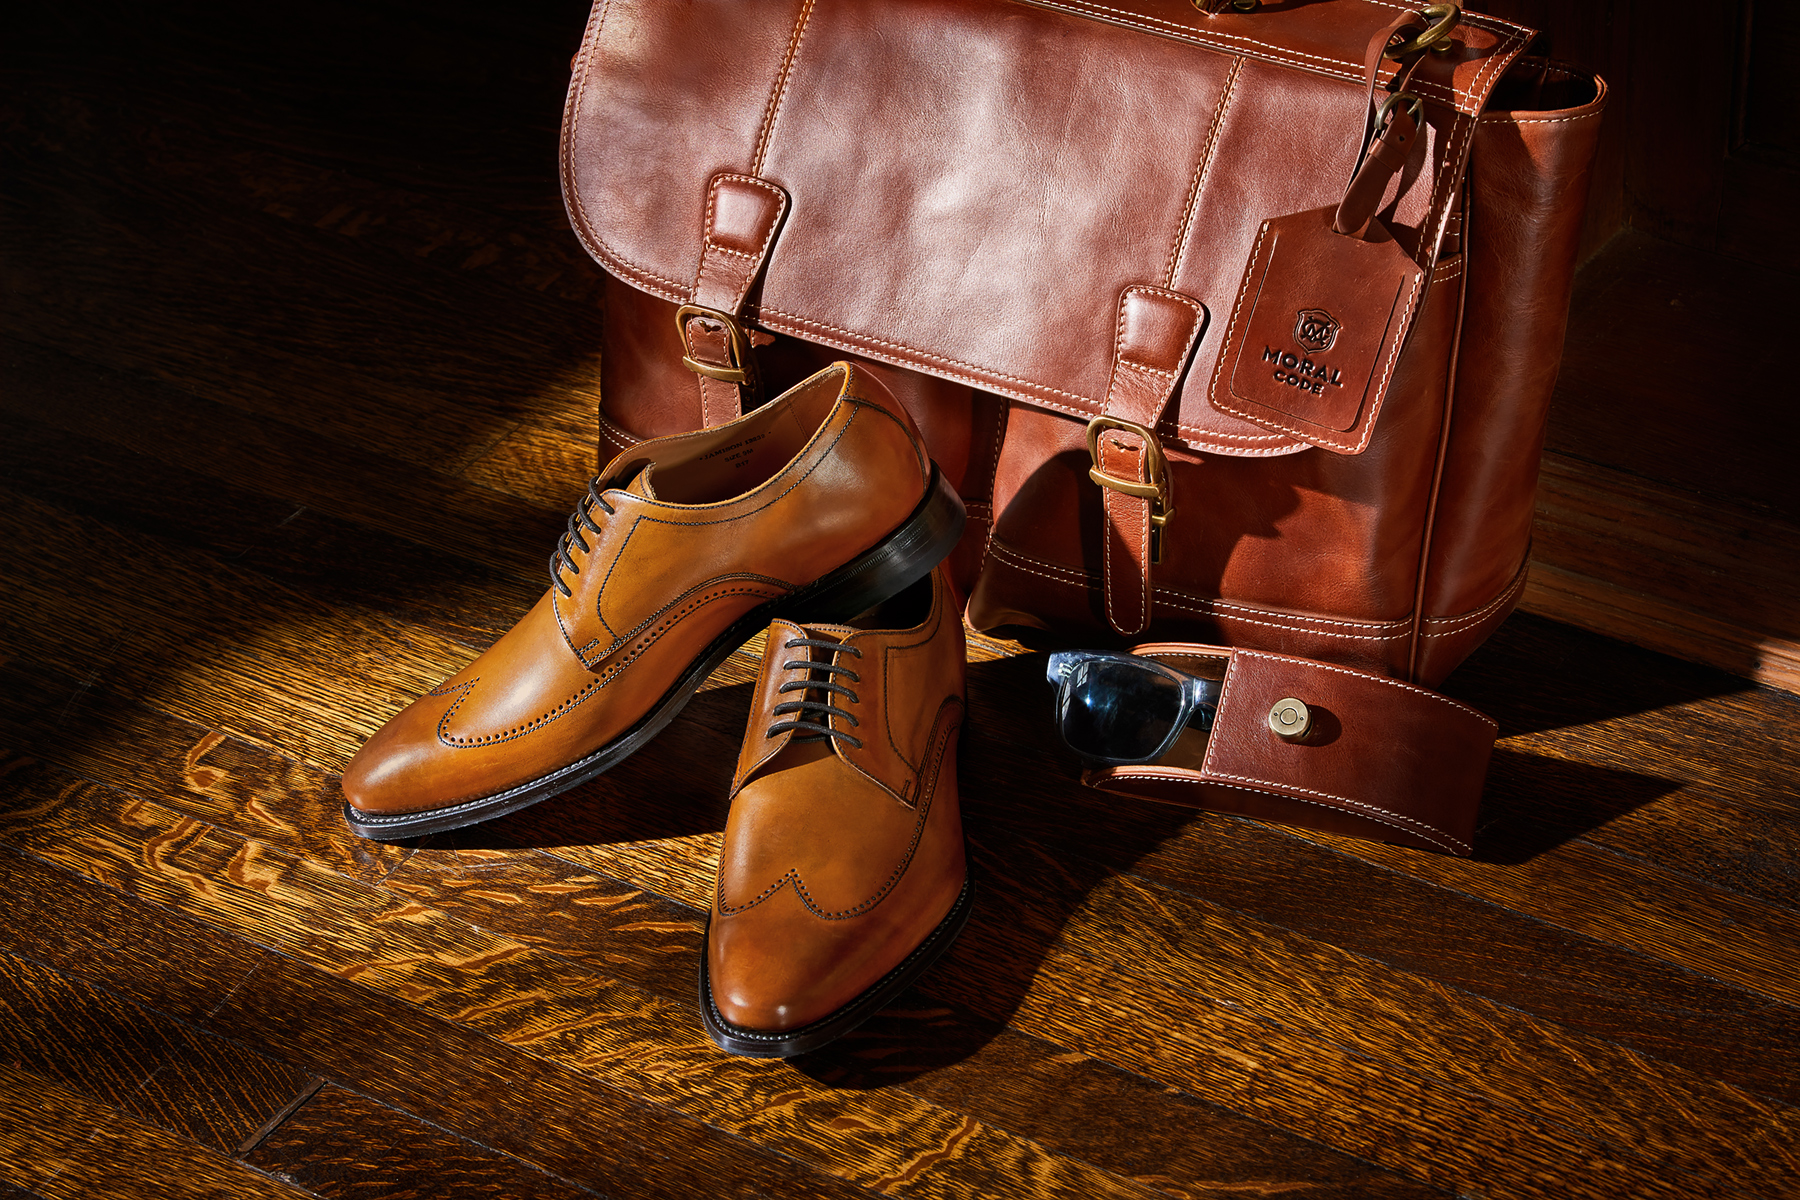 MC-PRODUCT_Jamison-Oak-Shoe_Atticus-Brown-Bag_Sm.jpg